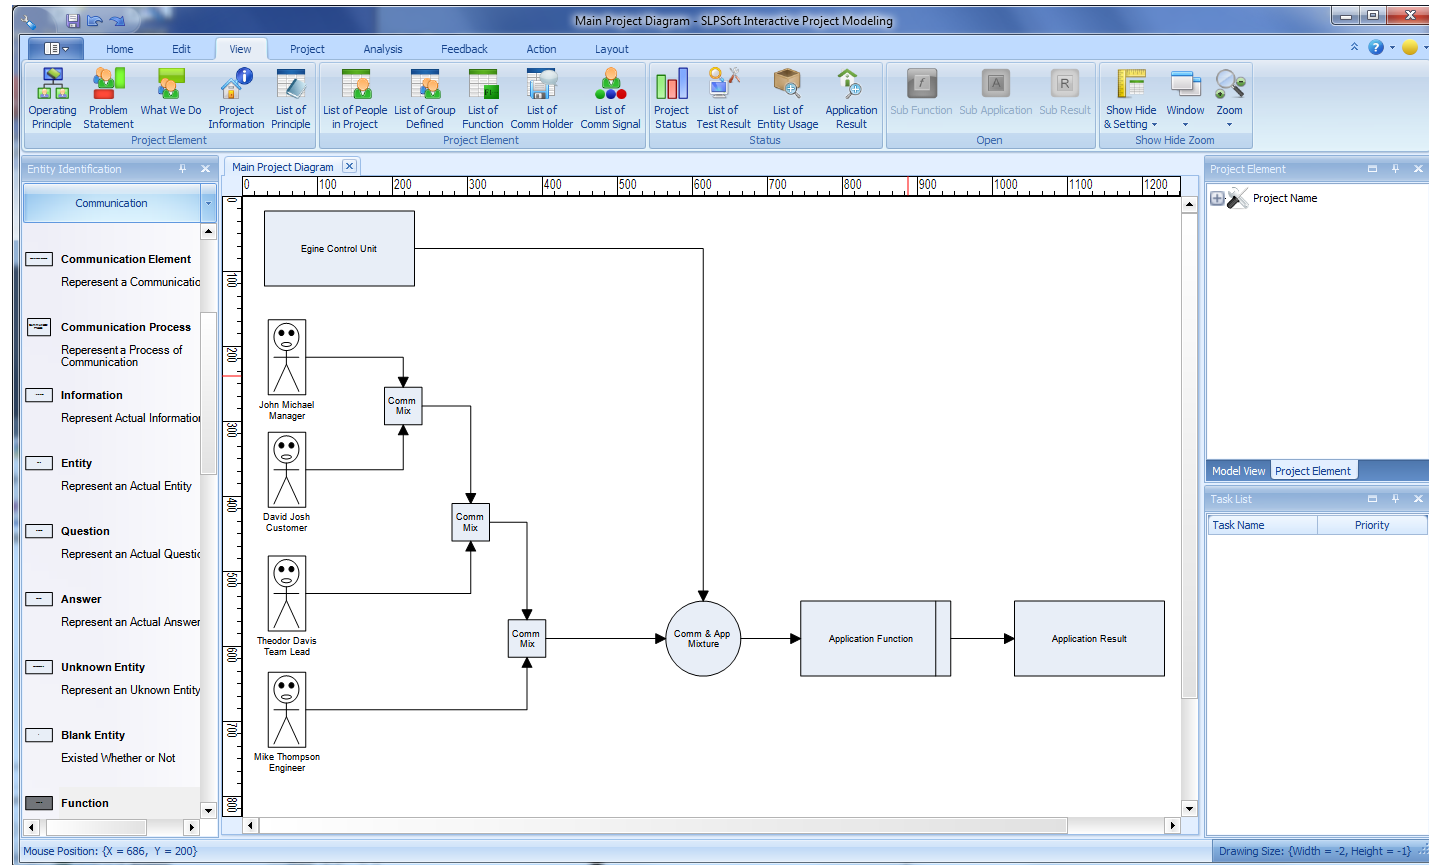 Click to view SLPSoft Interactive Project Modeling screenshots